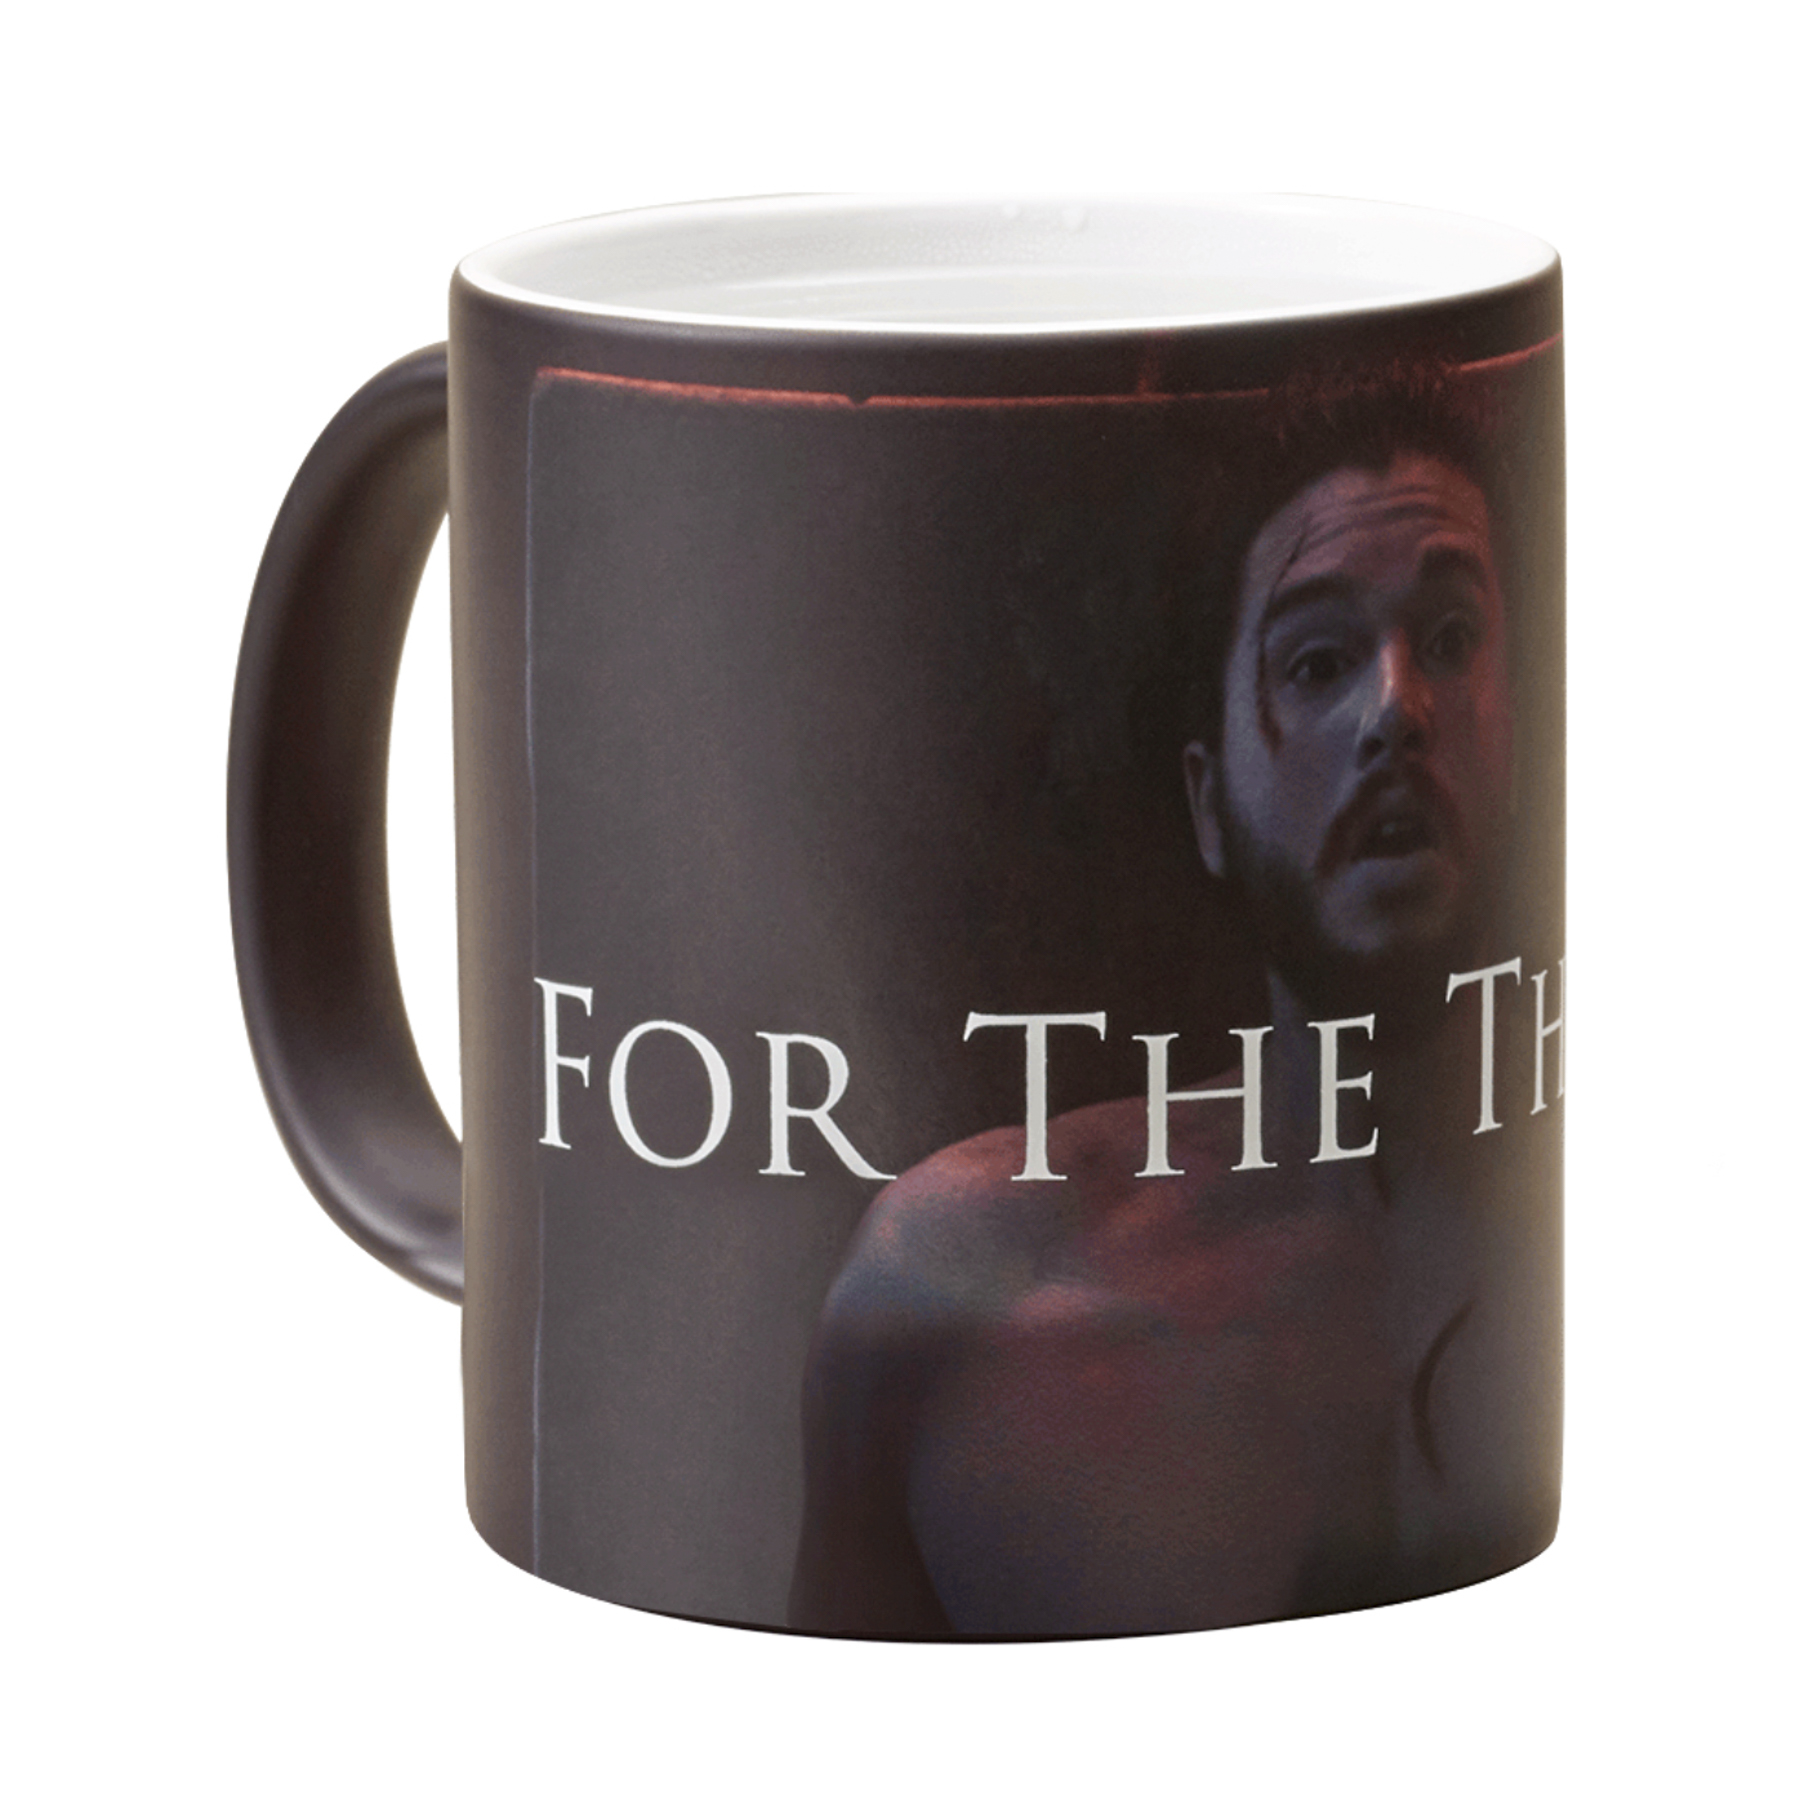 Game of Thrones Giveaway For the Throne Jon Snow Heat Transforming Mug from Game of Thrones CR: https://shop.hbo.com/products/for-the-throne-jon-transforming-mug-from-game-of-thrones CR: HBO Shop